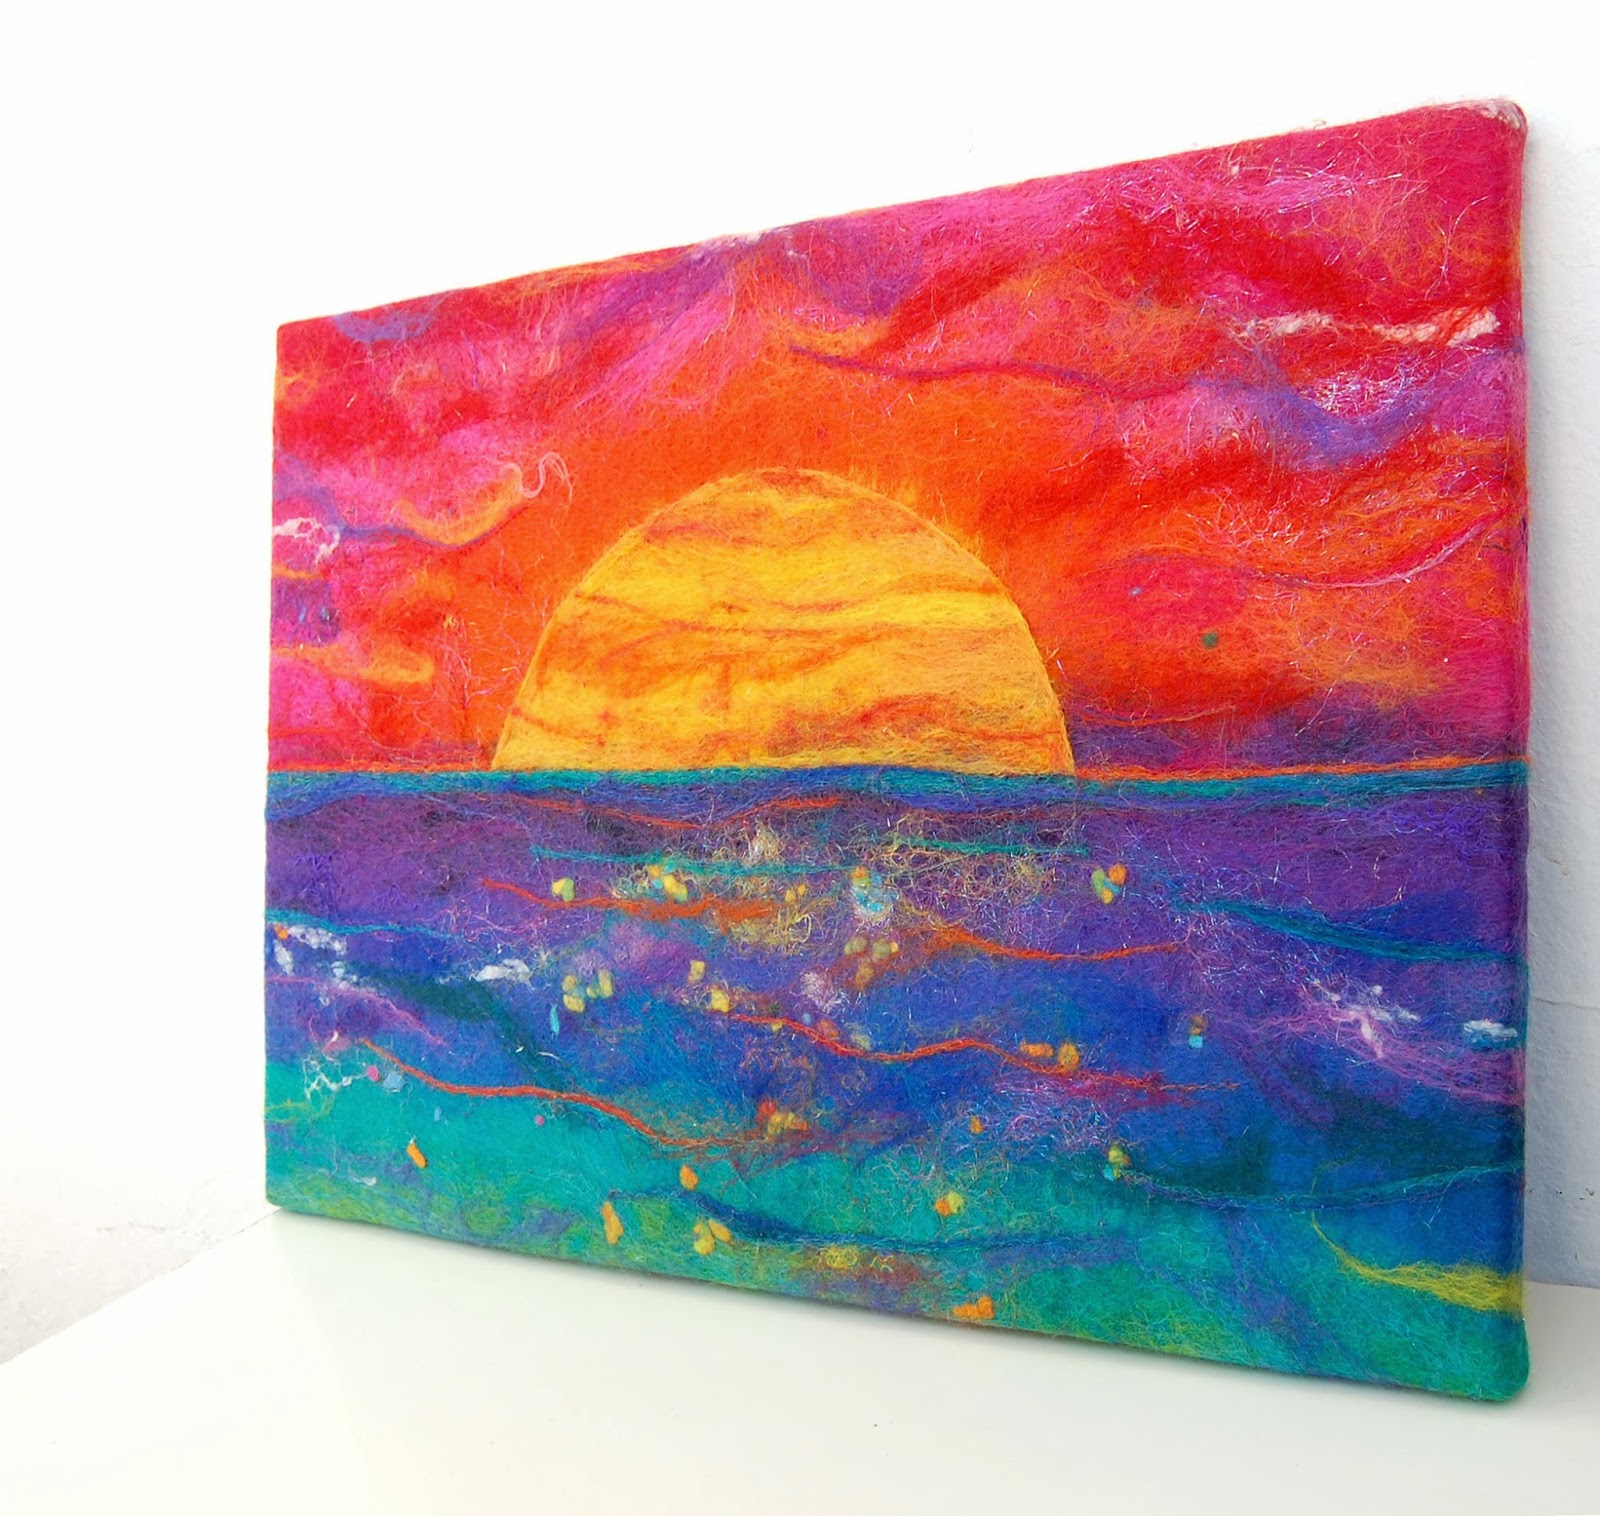 https://www.etsy.com/listing/181569928/ibiza-sunset-a-bright-and-bold-felted?ref=shop_home_active_7